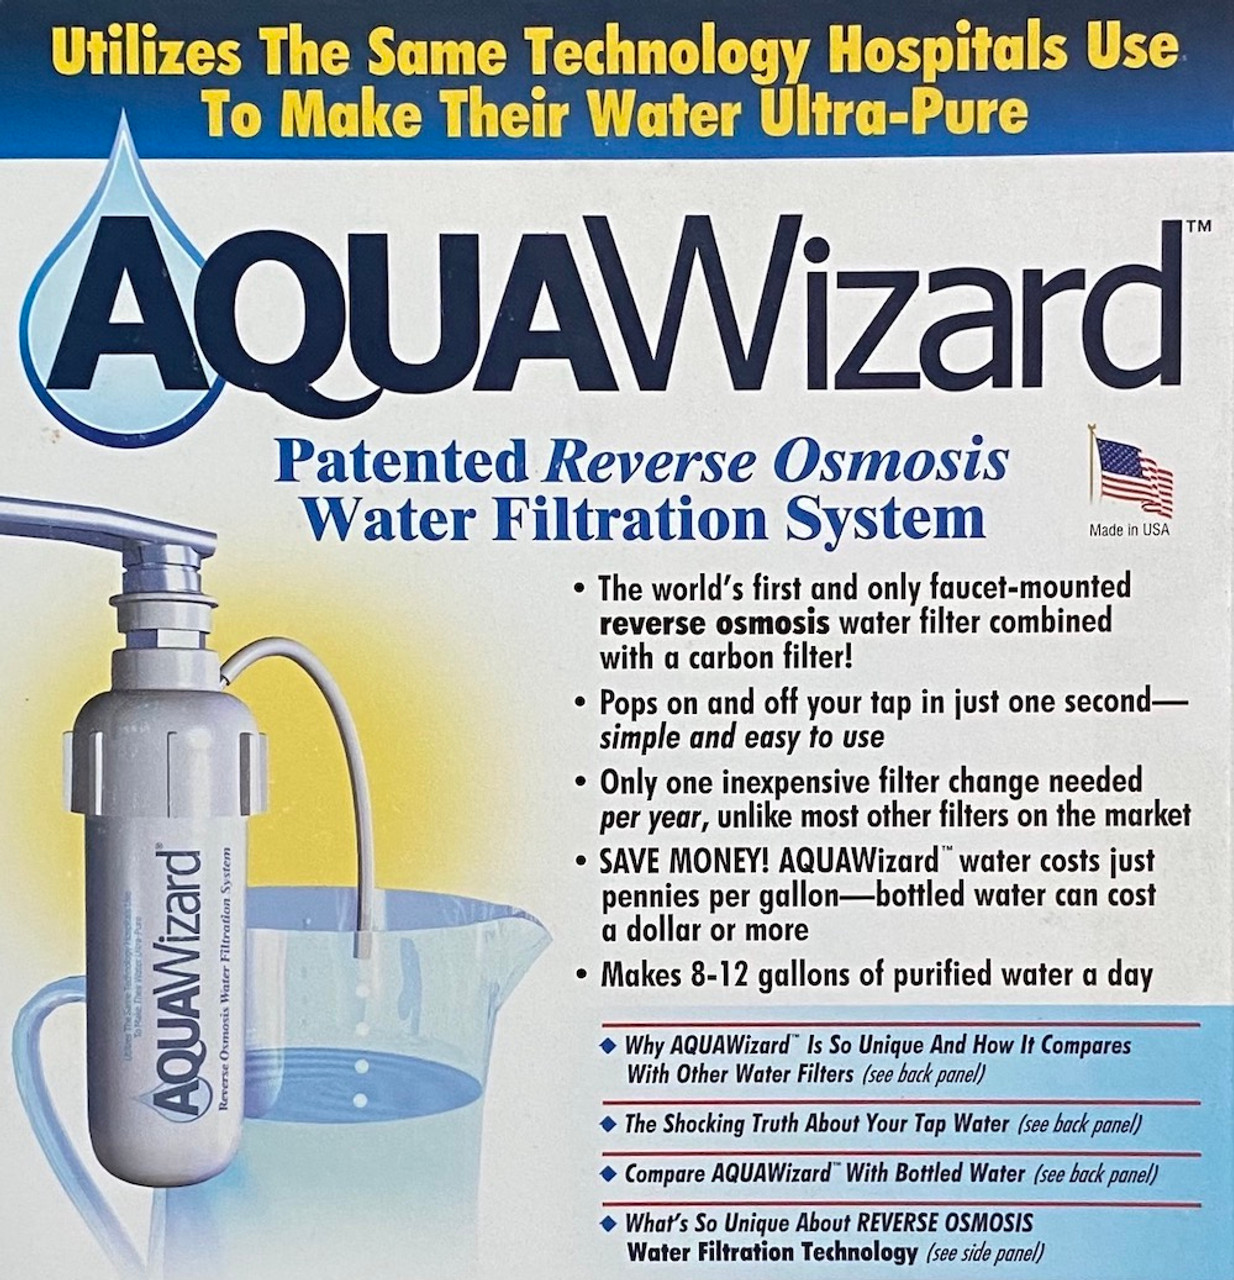 AquaWizard II - Faucet Mount RO Unit With Tester